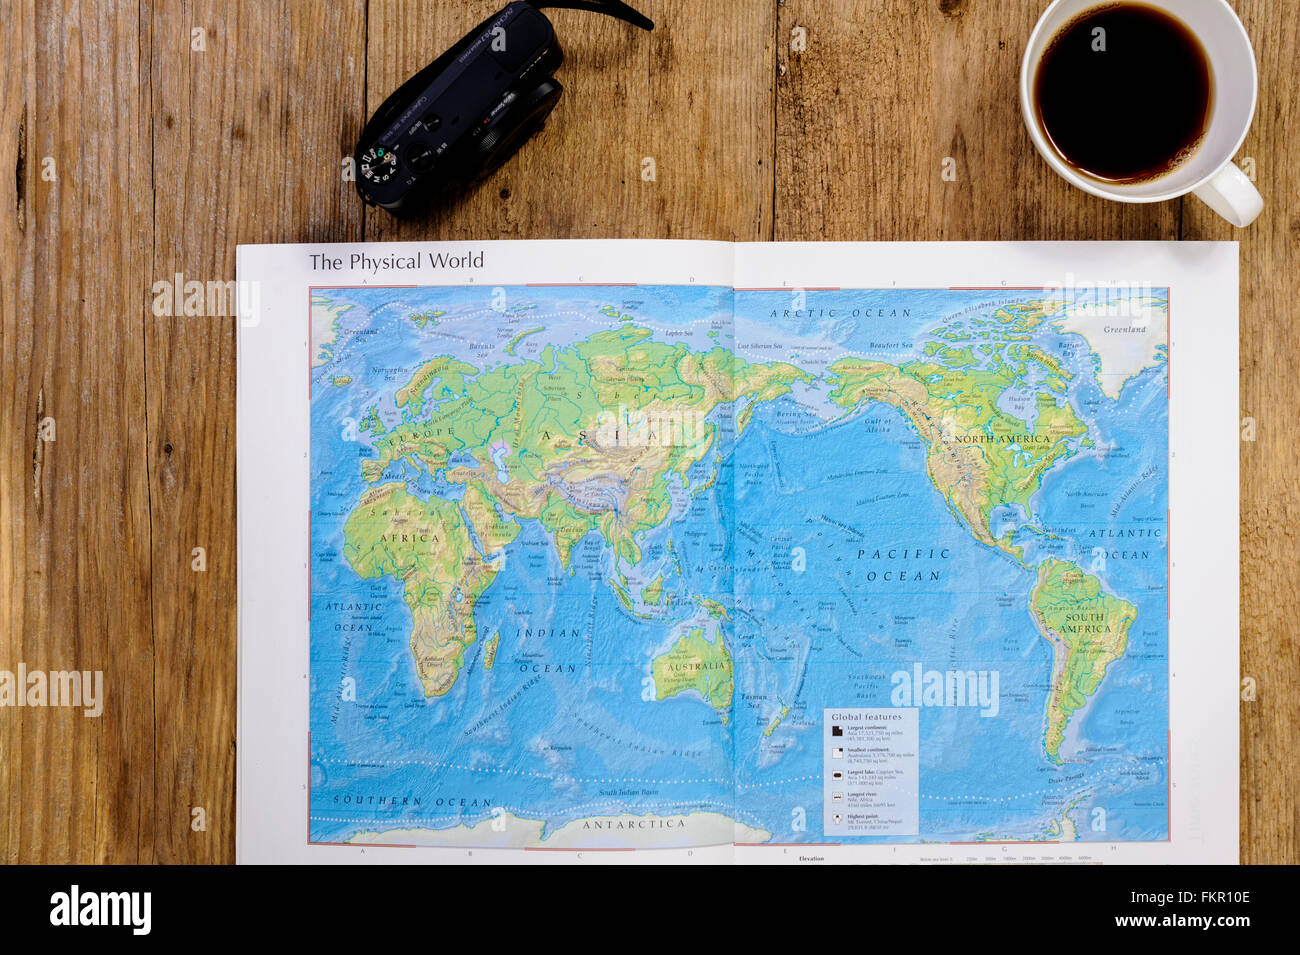 Planning a holiday, with world map. - Stock Image